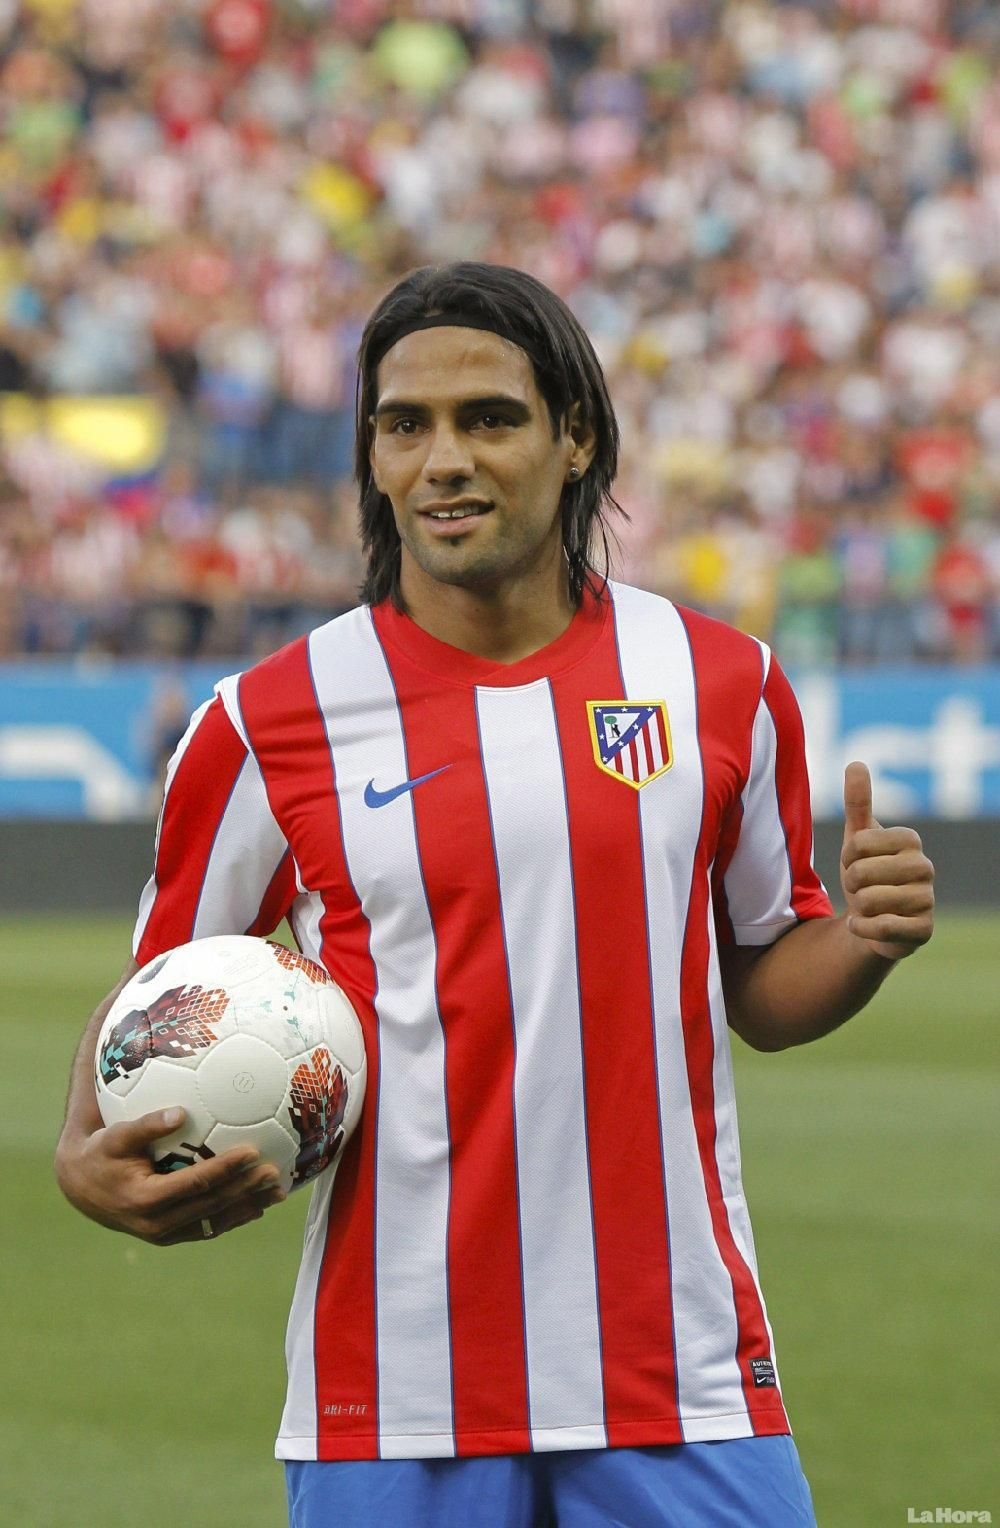 Falcao Atletico Madrid Atletico De Madrid Atletico De Madrid Wallpapers Futbol Atletico De Madrid